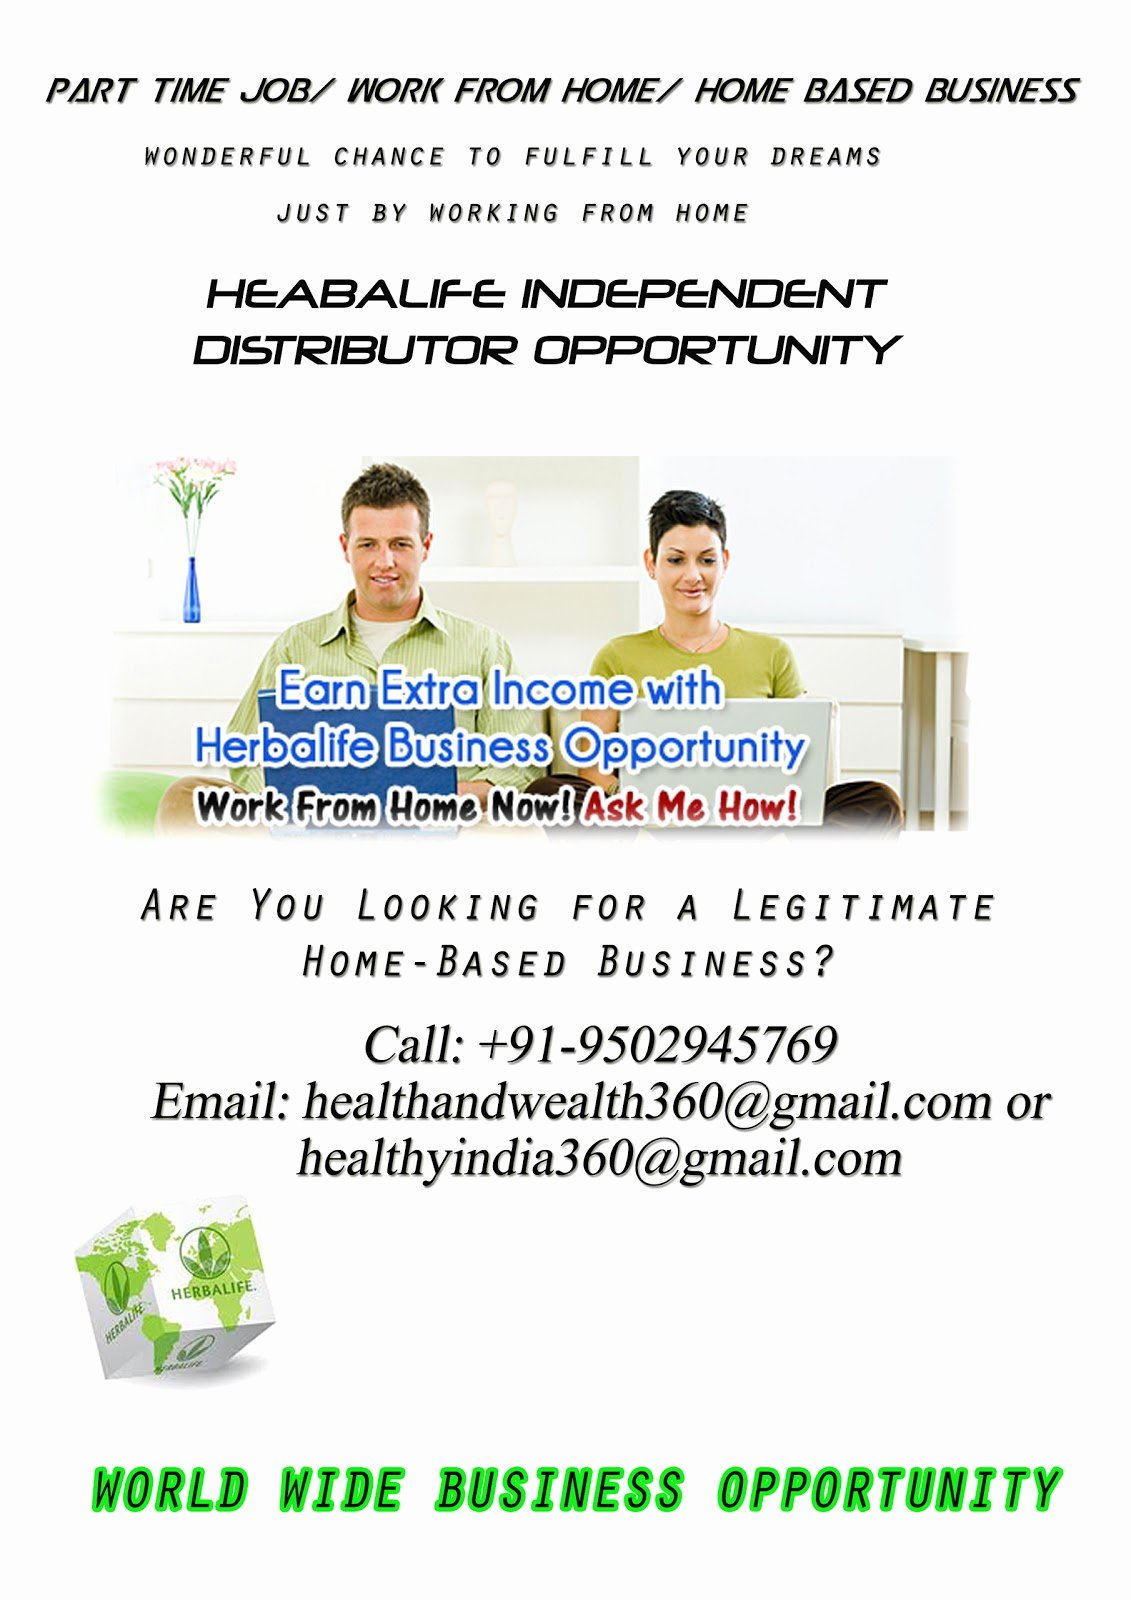 Herbalife Flyer Templates Luxury Herbalife Business Opportunity Herbalife Flyer